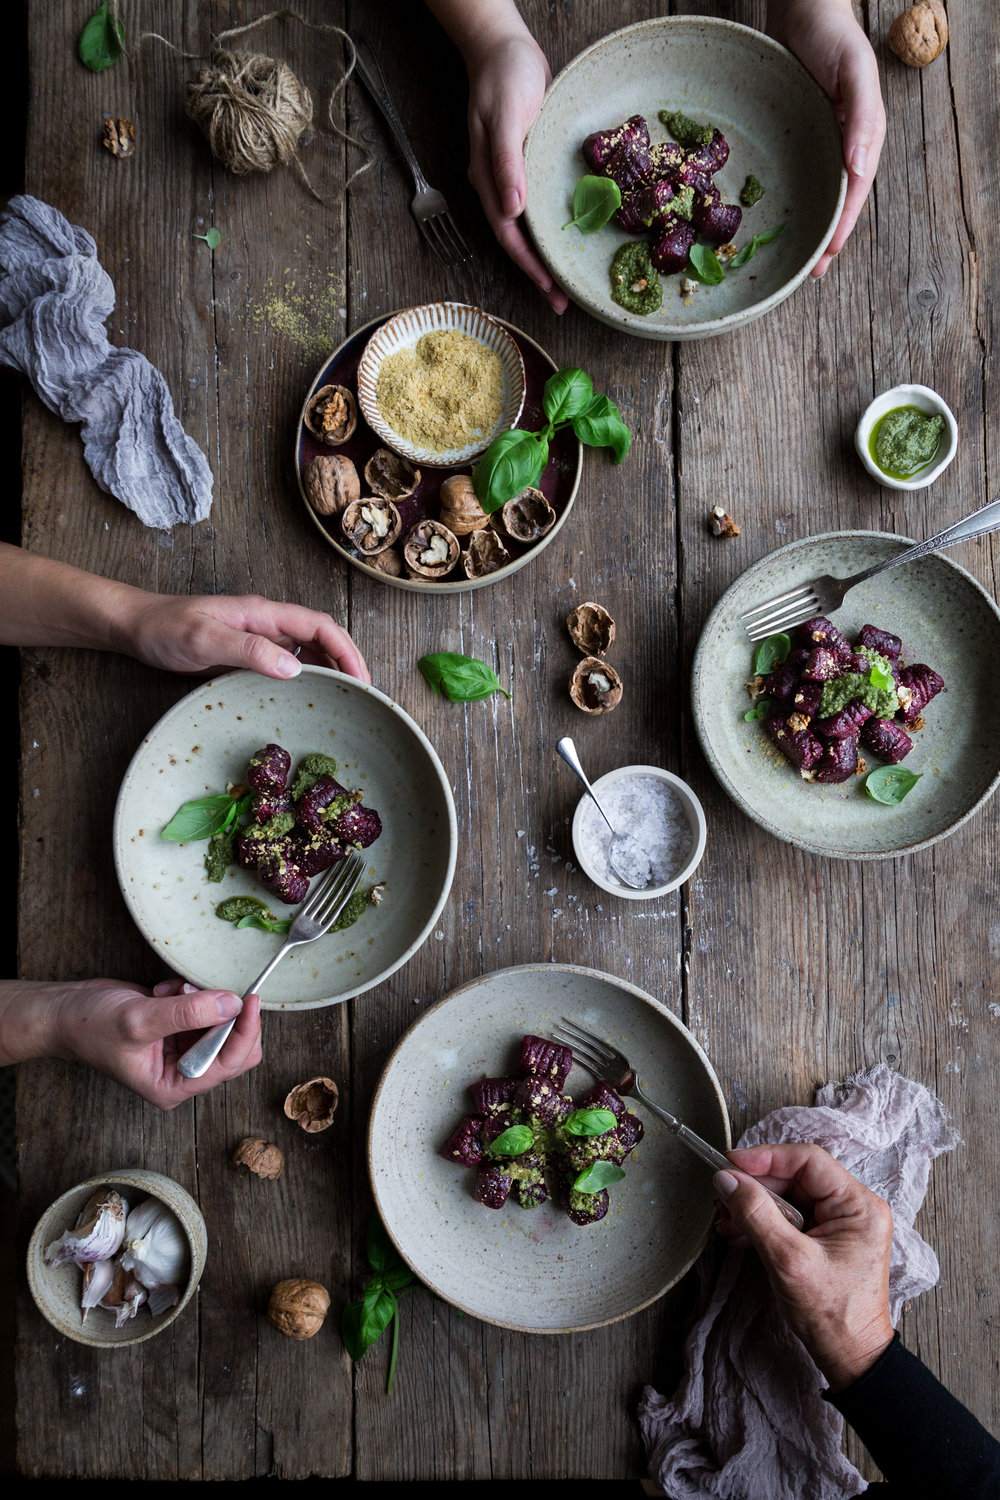 London food styling workshop - shot includes ceramics by sponsors,  NOM Living  and  Leu Ceramics  and blue salt by  Sous Chef .